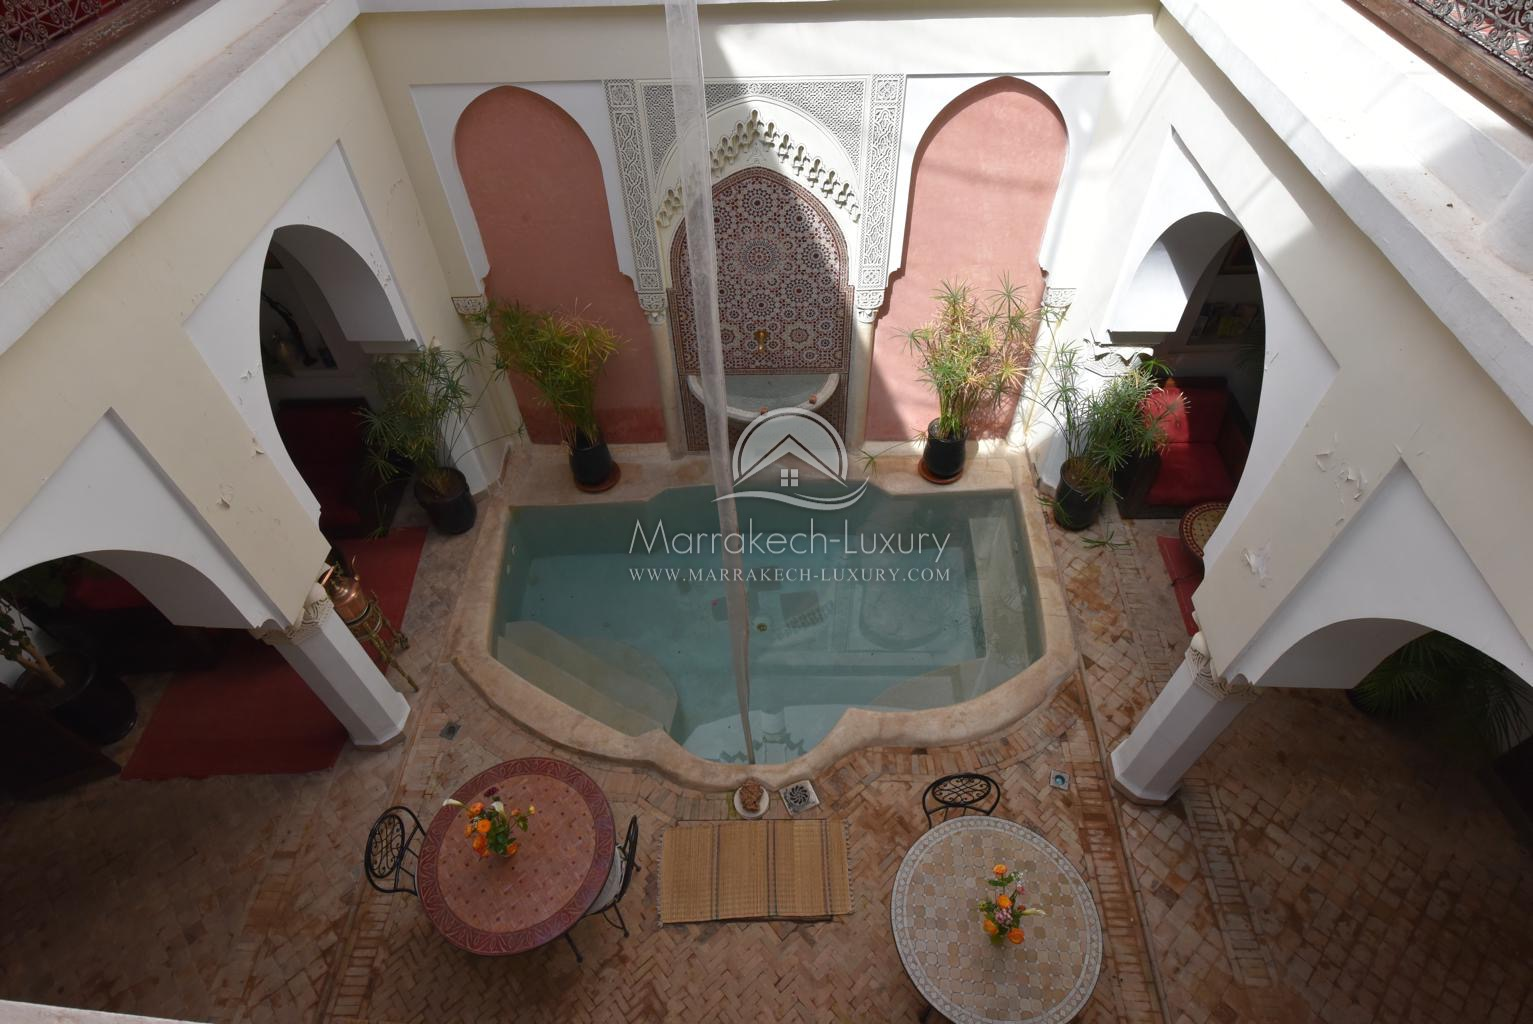 Riaavmed1037ma 34 agence immobili re marrakech acheter for Agence immobiliere 34